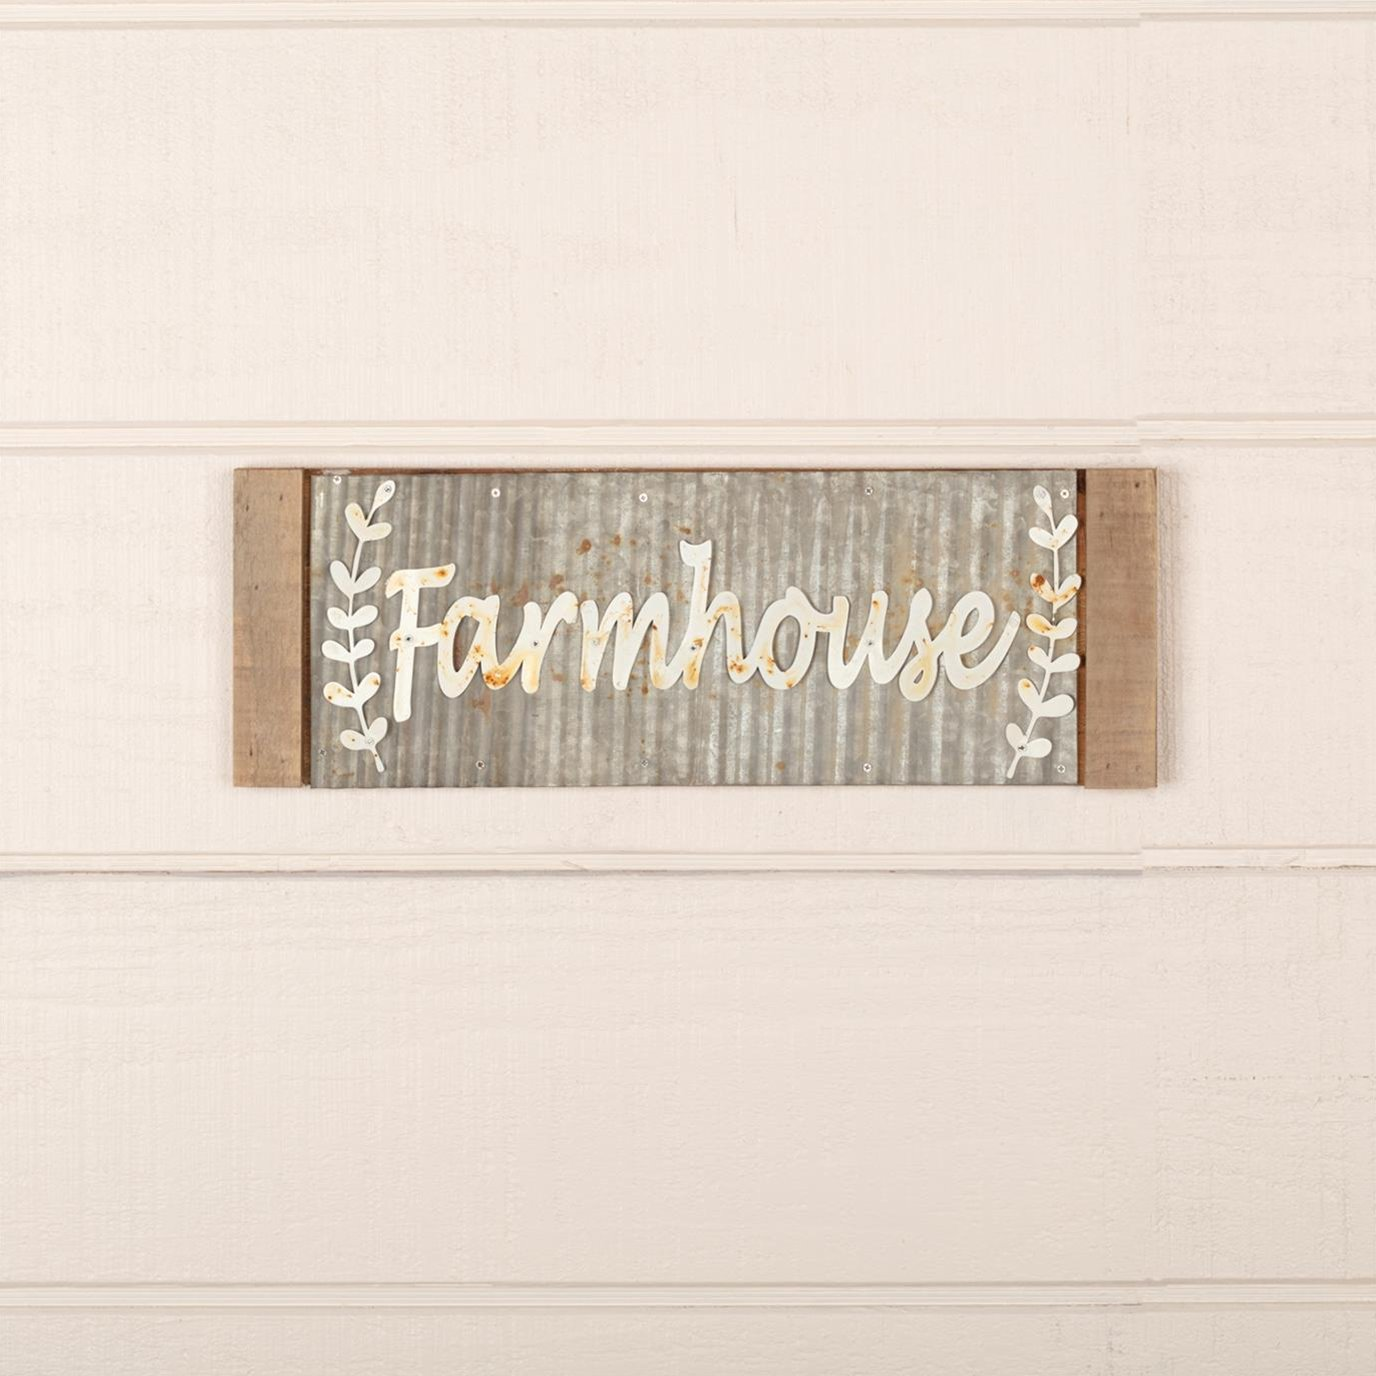 Galvanized Metal Farmhouse Sign 17x6